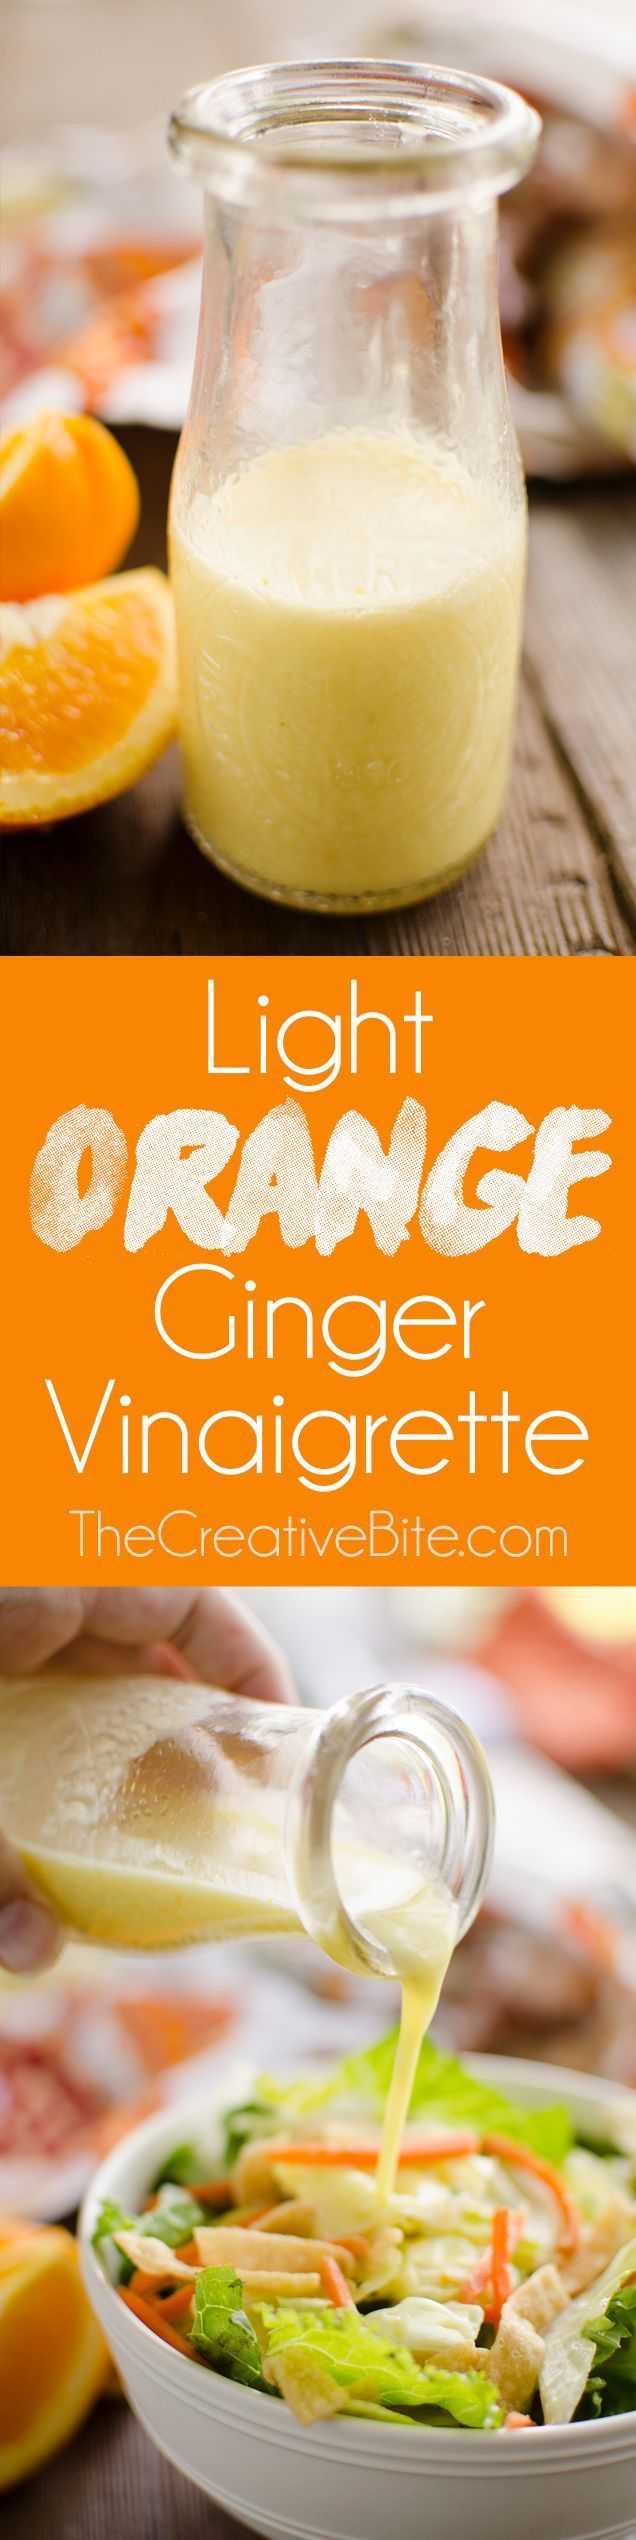 Light Orange Ginger Vinaigrette is a healthy and refreshing homemade dressing perfect for an Asian inspired salad or wrap. #Salad #Dressing #Healthy